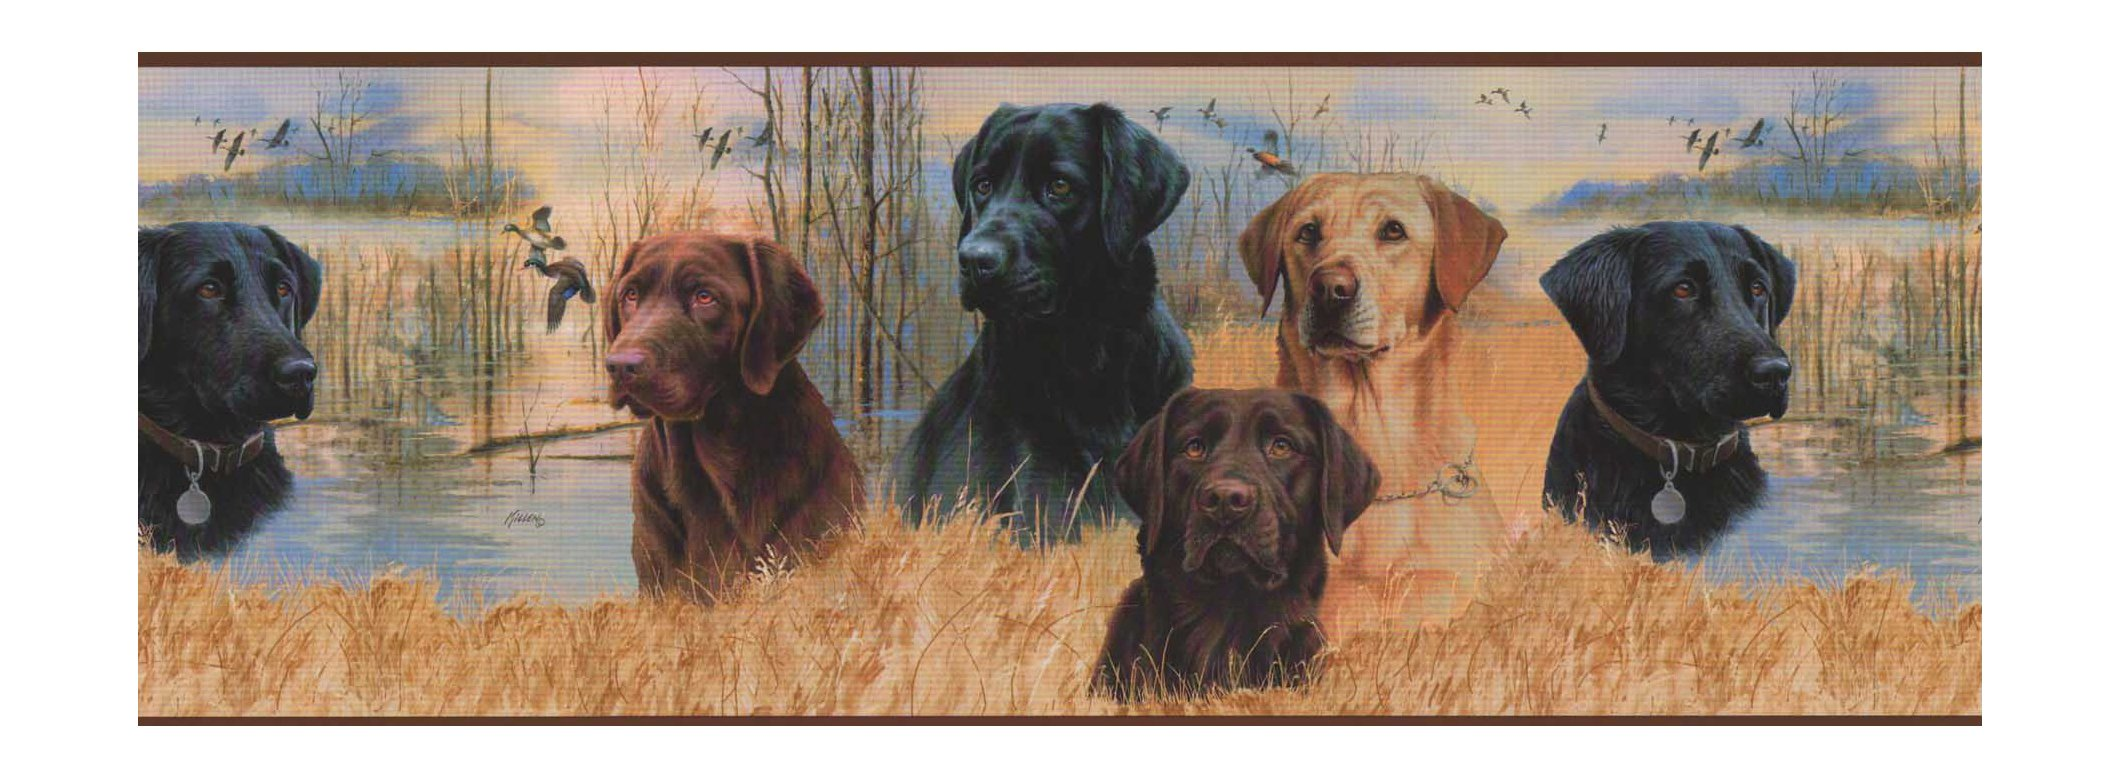 York Wallcoverings Lake Forest Lodge NM6000B Working Dogs Border, Multi/Brown Band by York Wallcoverings